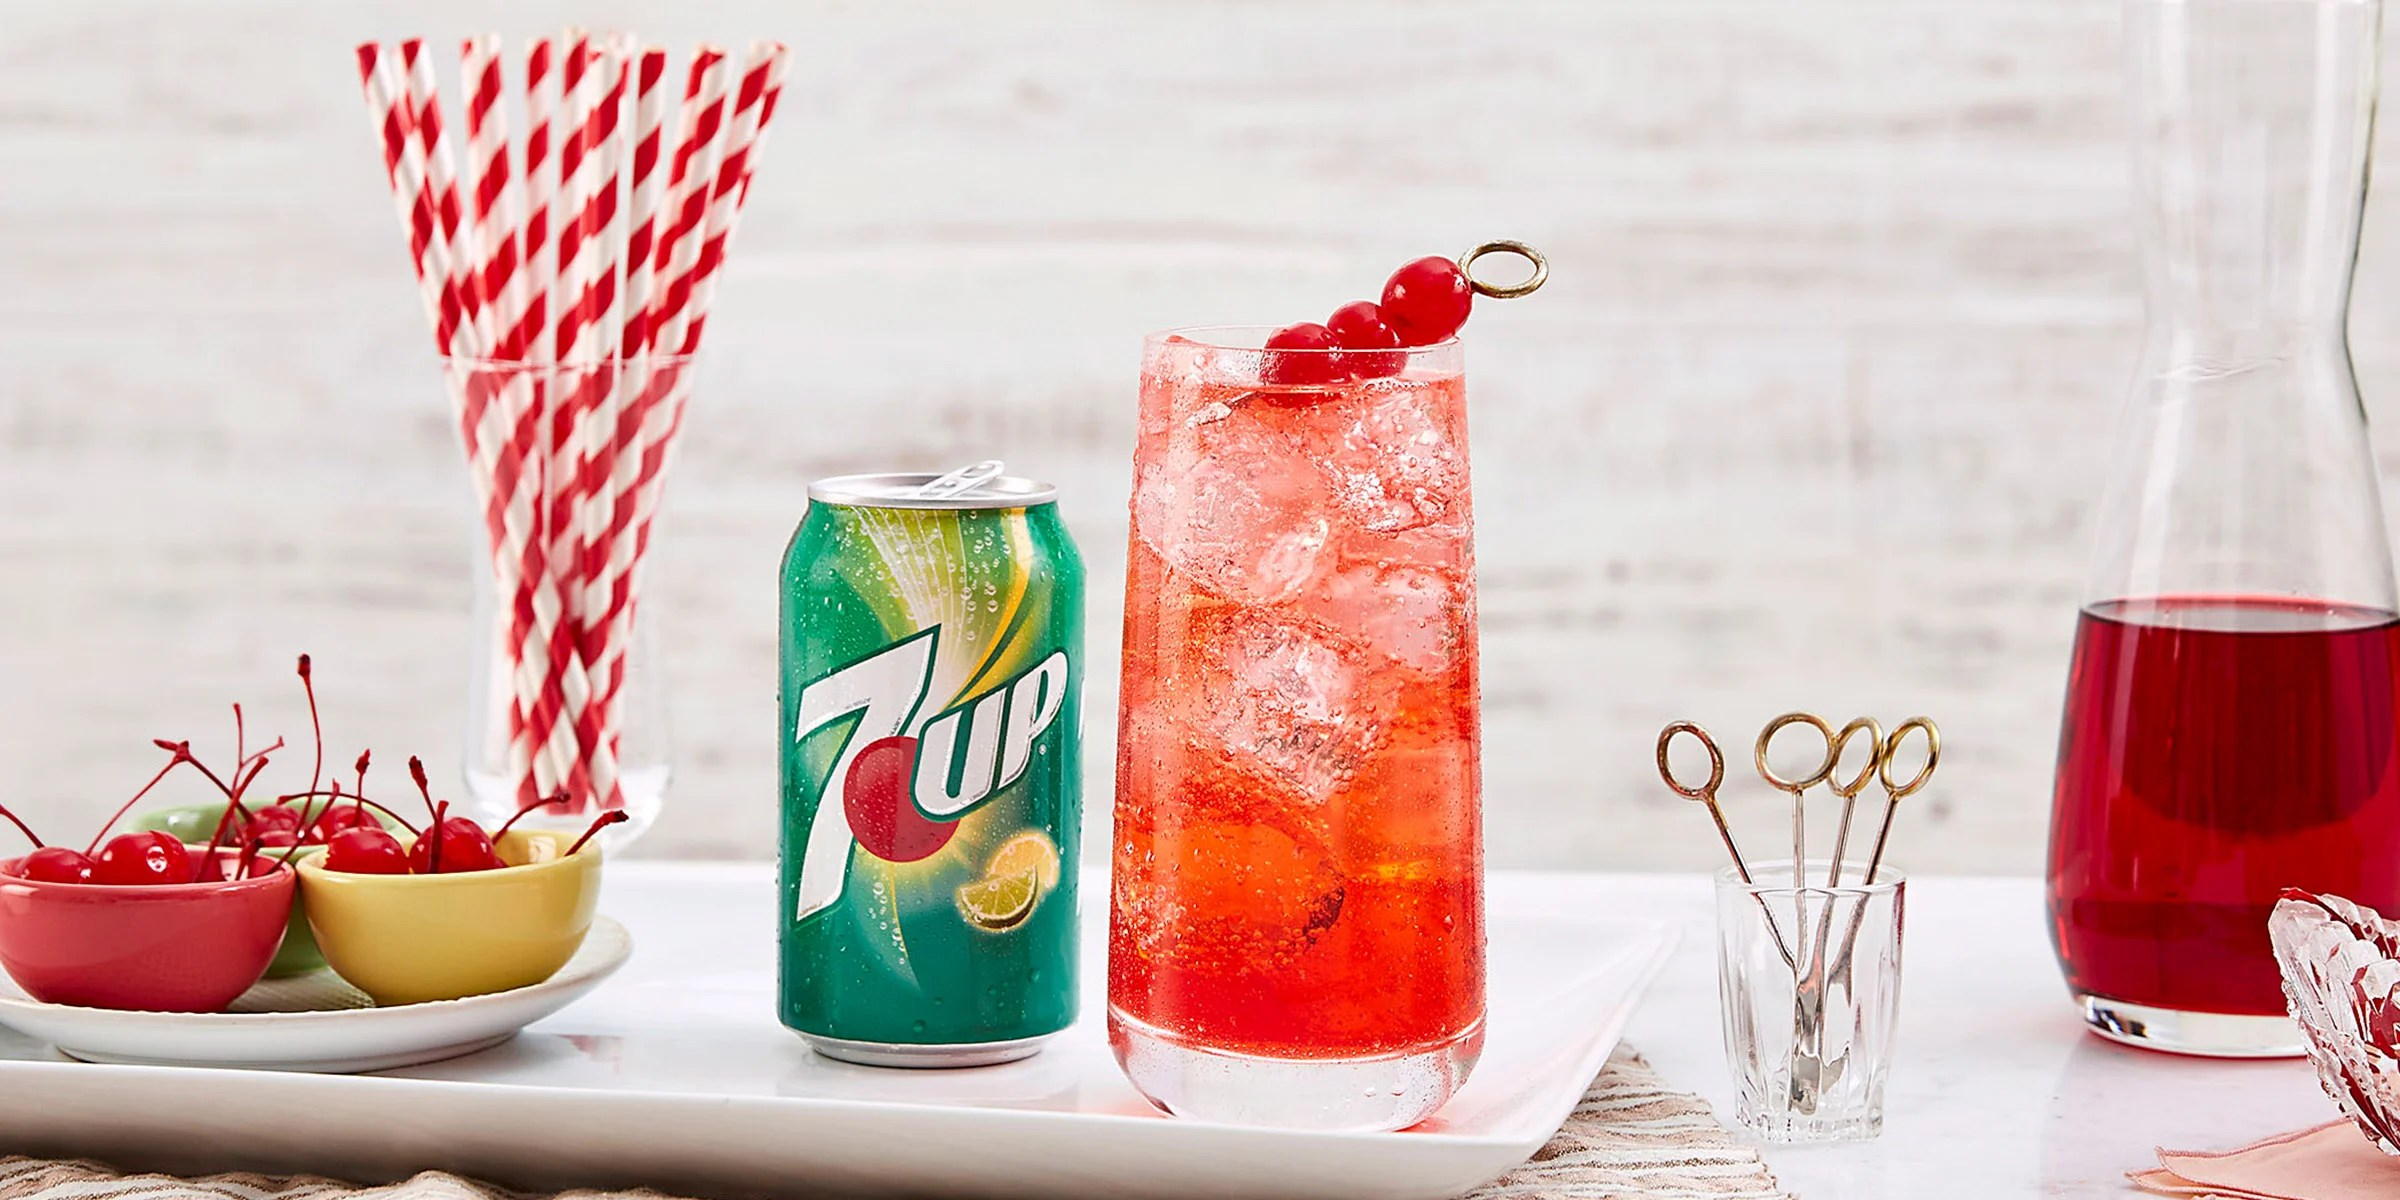 Shirley Temple Recipe 7up